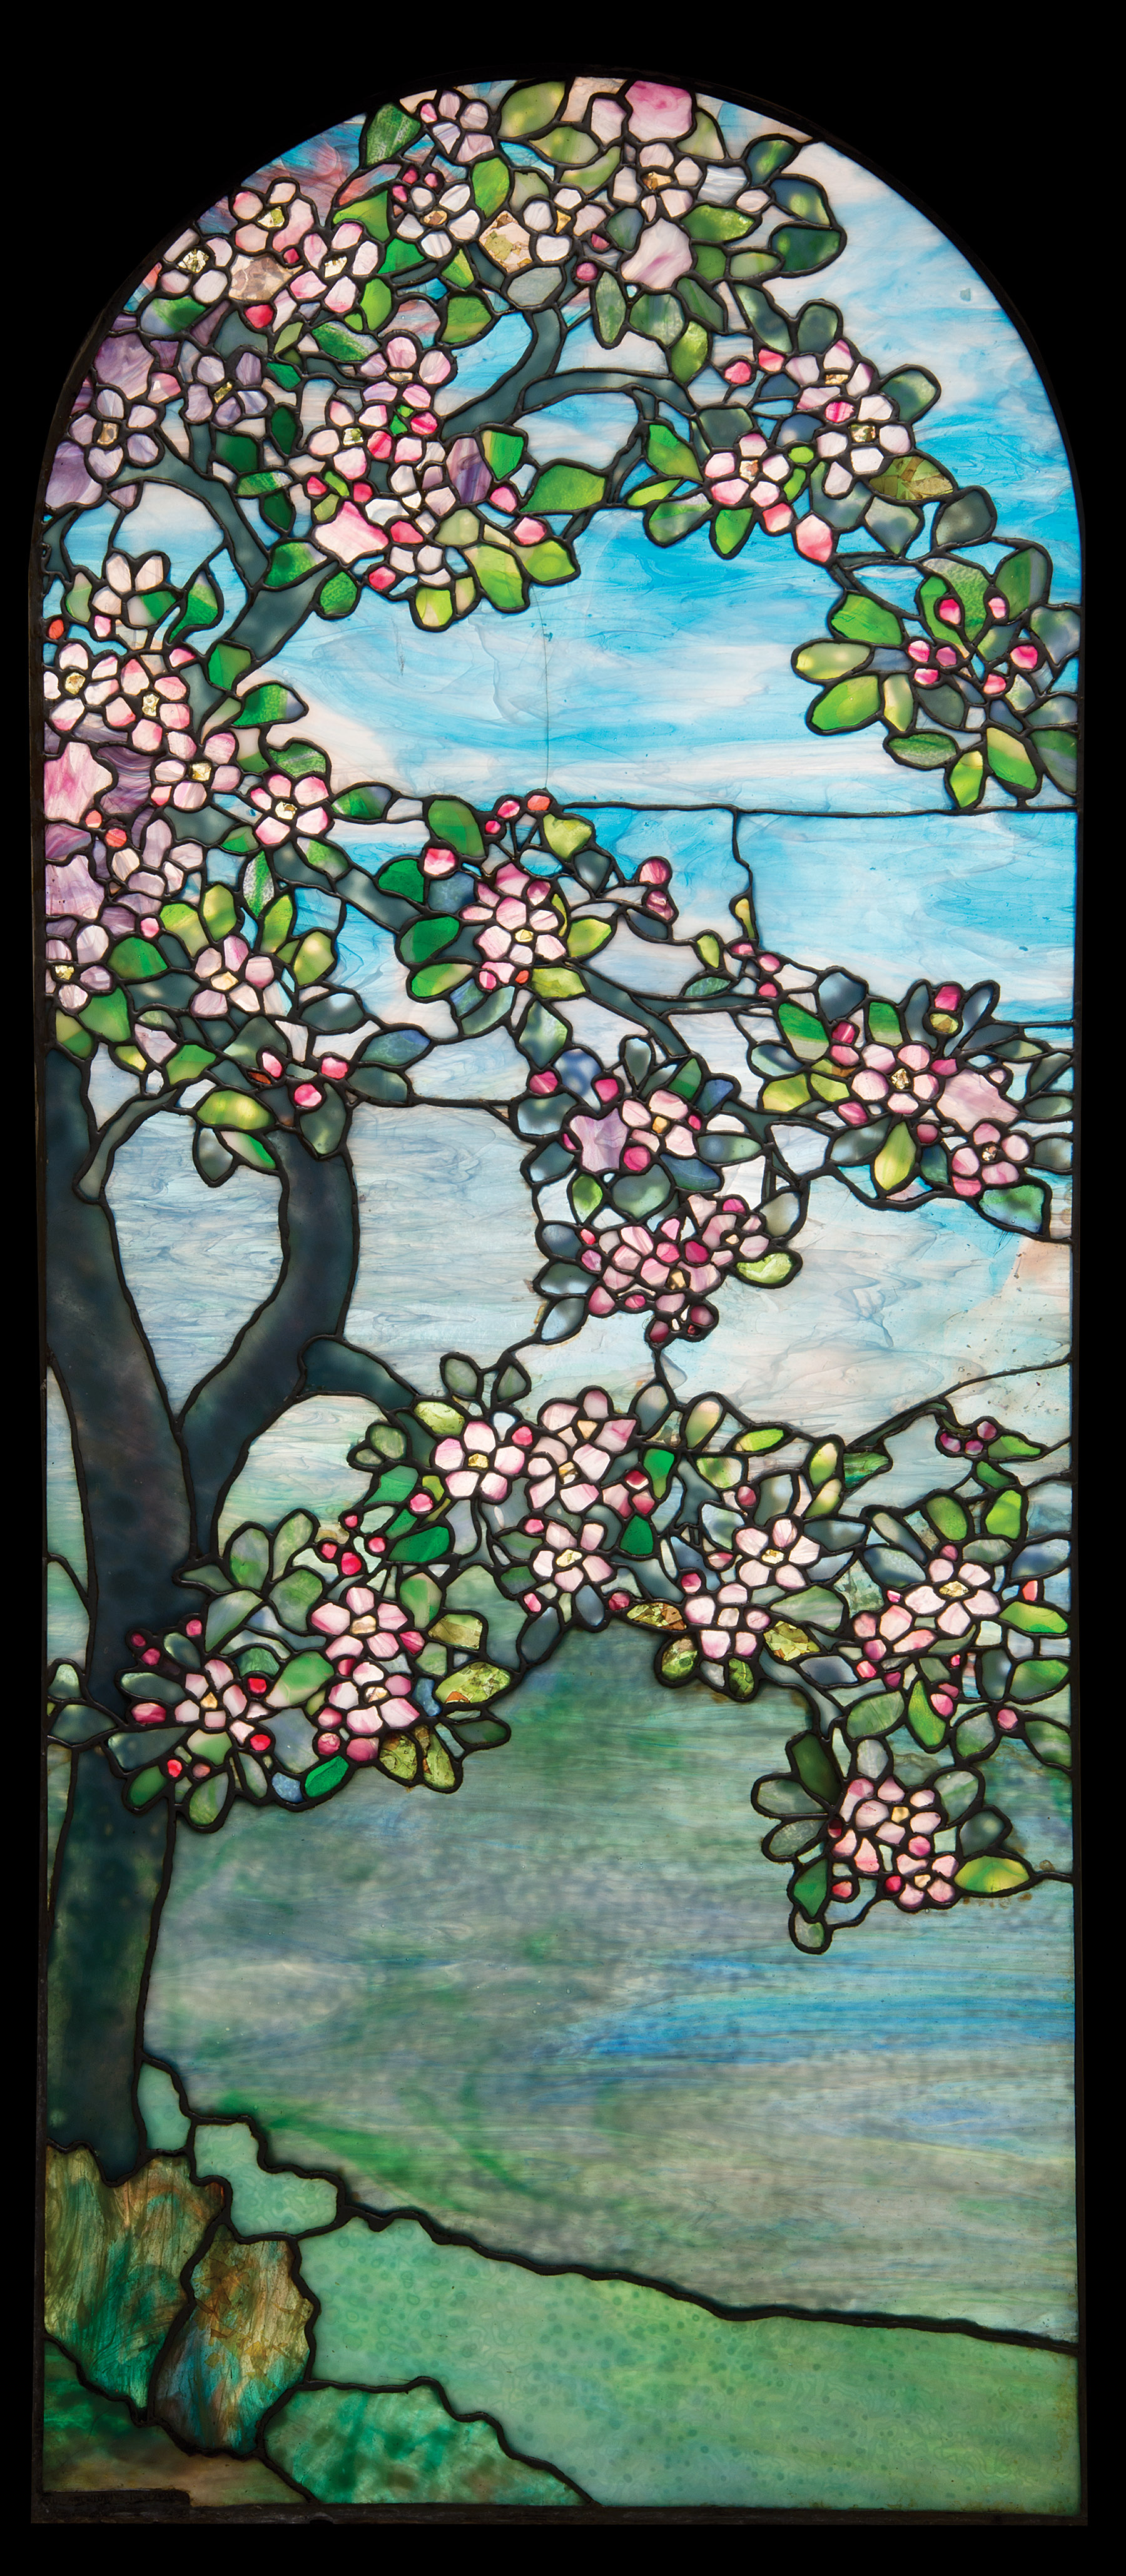 912361bb9c0 Floral themes with precise renderings of different blossoms were popular  for both lamp shades and windows